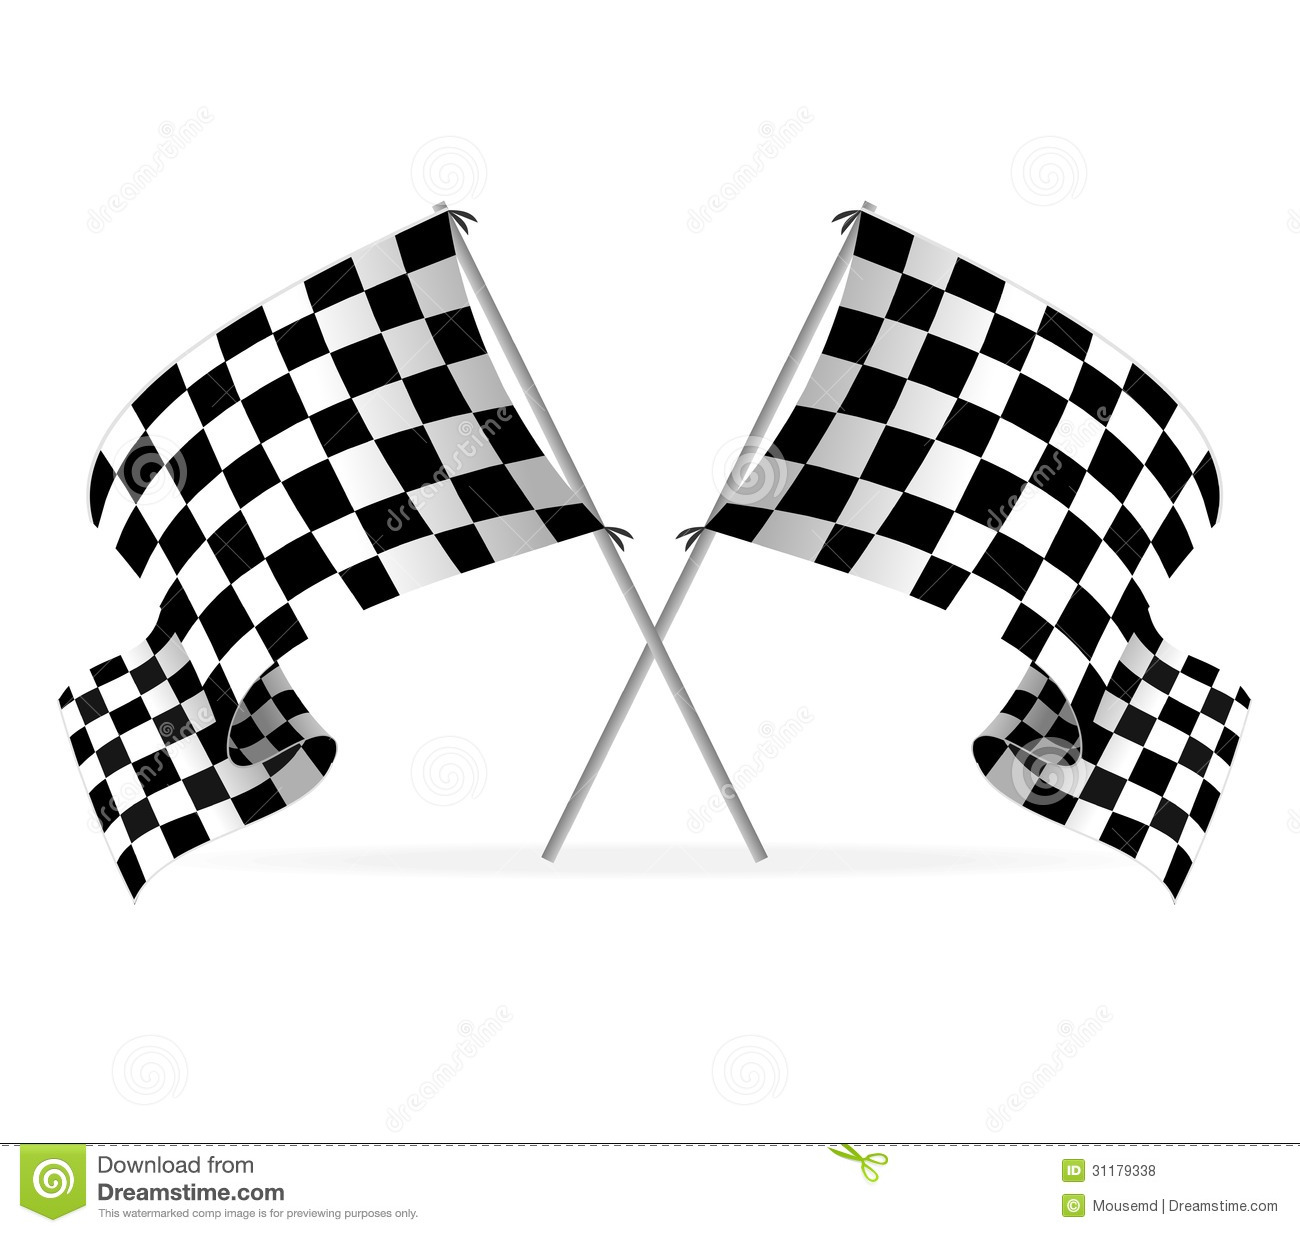 Samsonas Bmw M3 E36e46 6 Speed Dogbox Kit likewise 12 Ways Leaders Can Build A Winning Culture moreover Winner Celebration Ch ion Symbol 20332362 as well Royalty Free Stock Photos Vector Racing Flags File Eps Format Image31179338 further Postimg 4464826 11. on race winner